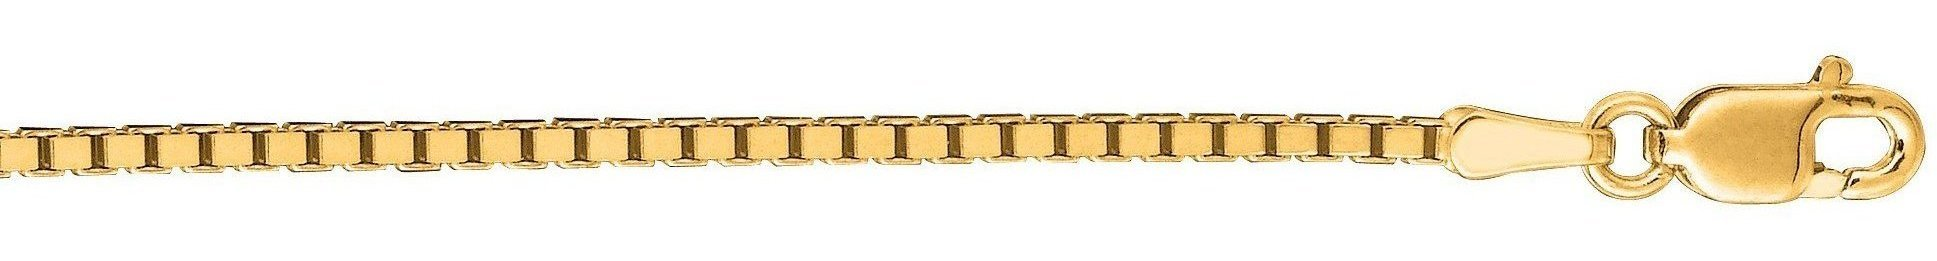 "22"" 14K Yellow Gold 1.4mm (0.06"") Polished Classic Box Chain w/ Lobster Clasp"